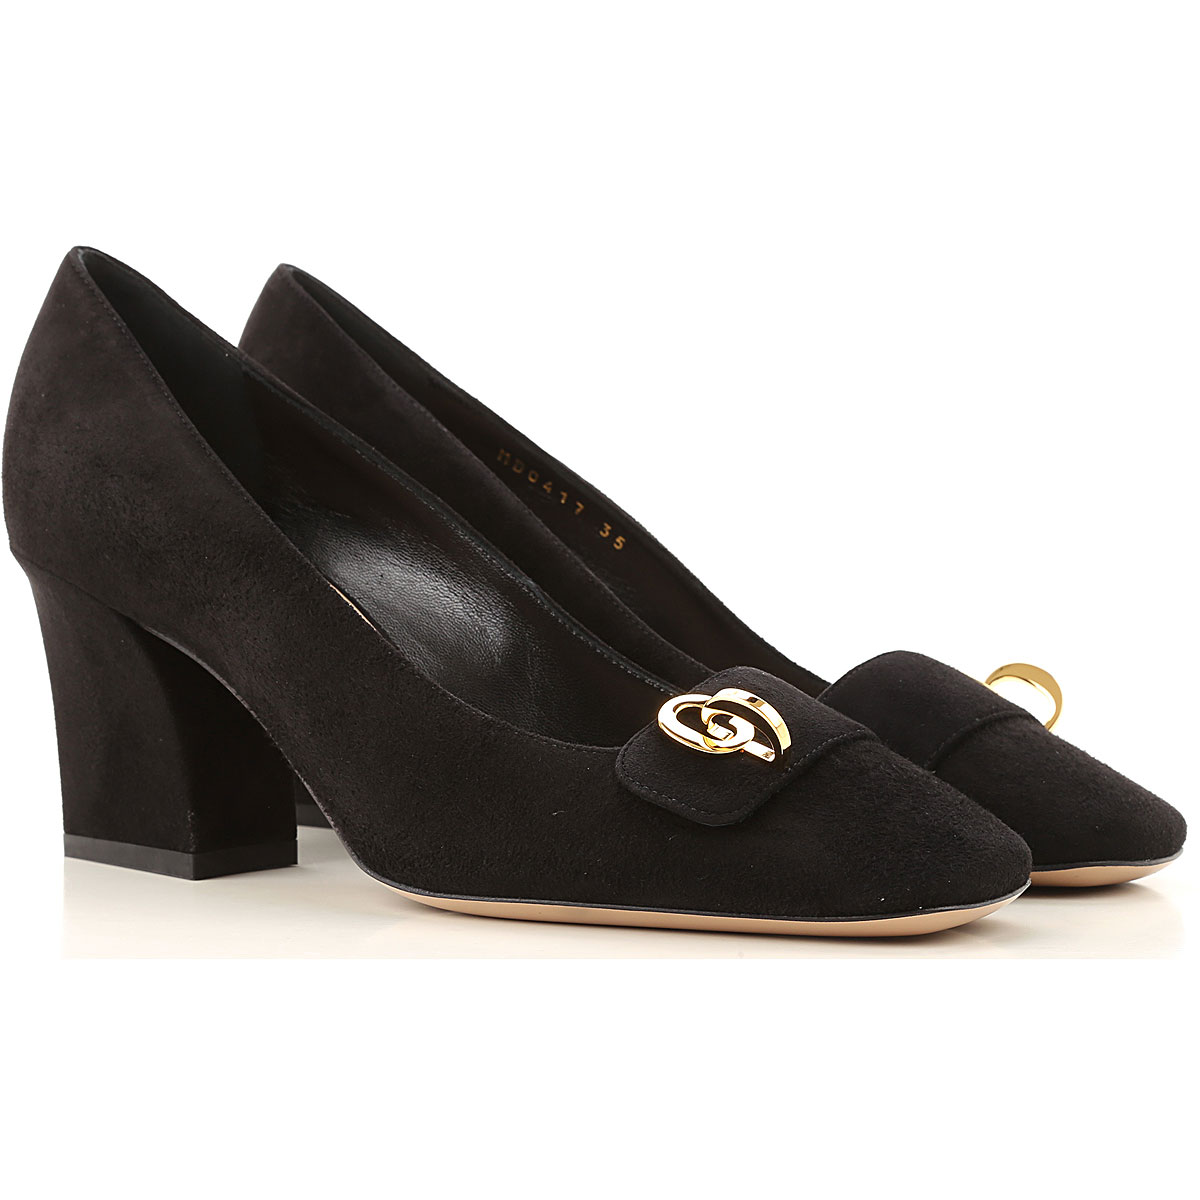 Christian Dior Pumps & High Heels for Women On Sale, Black, Suede leather, 2019, 10 5 6 9